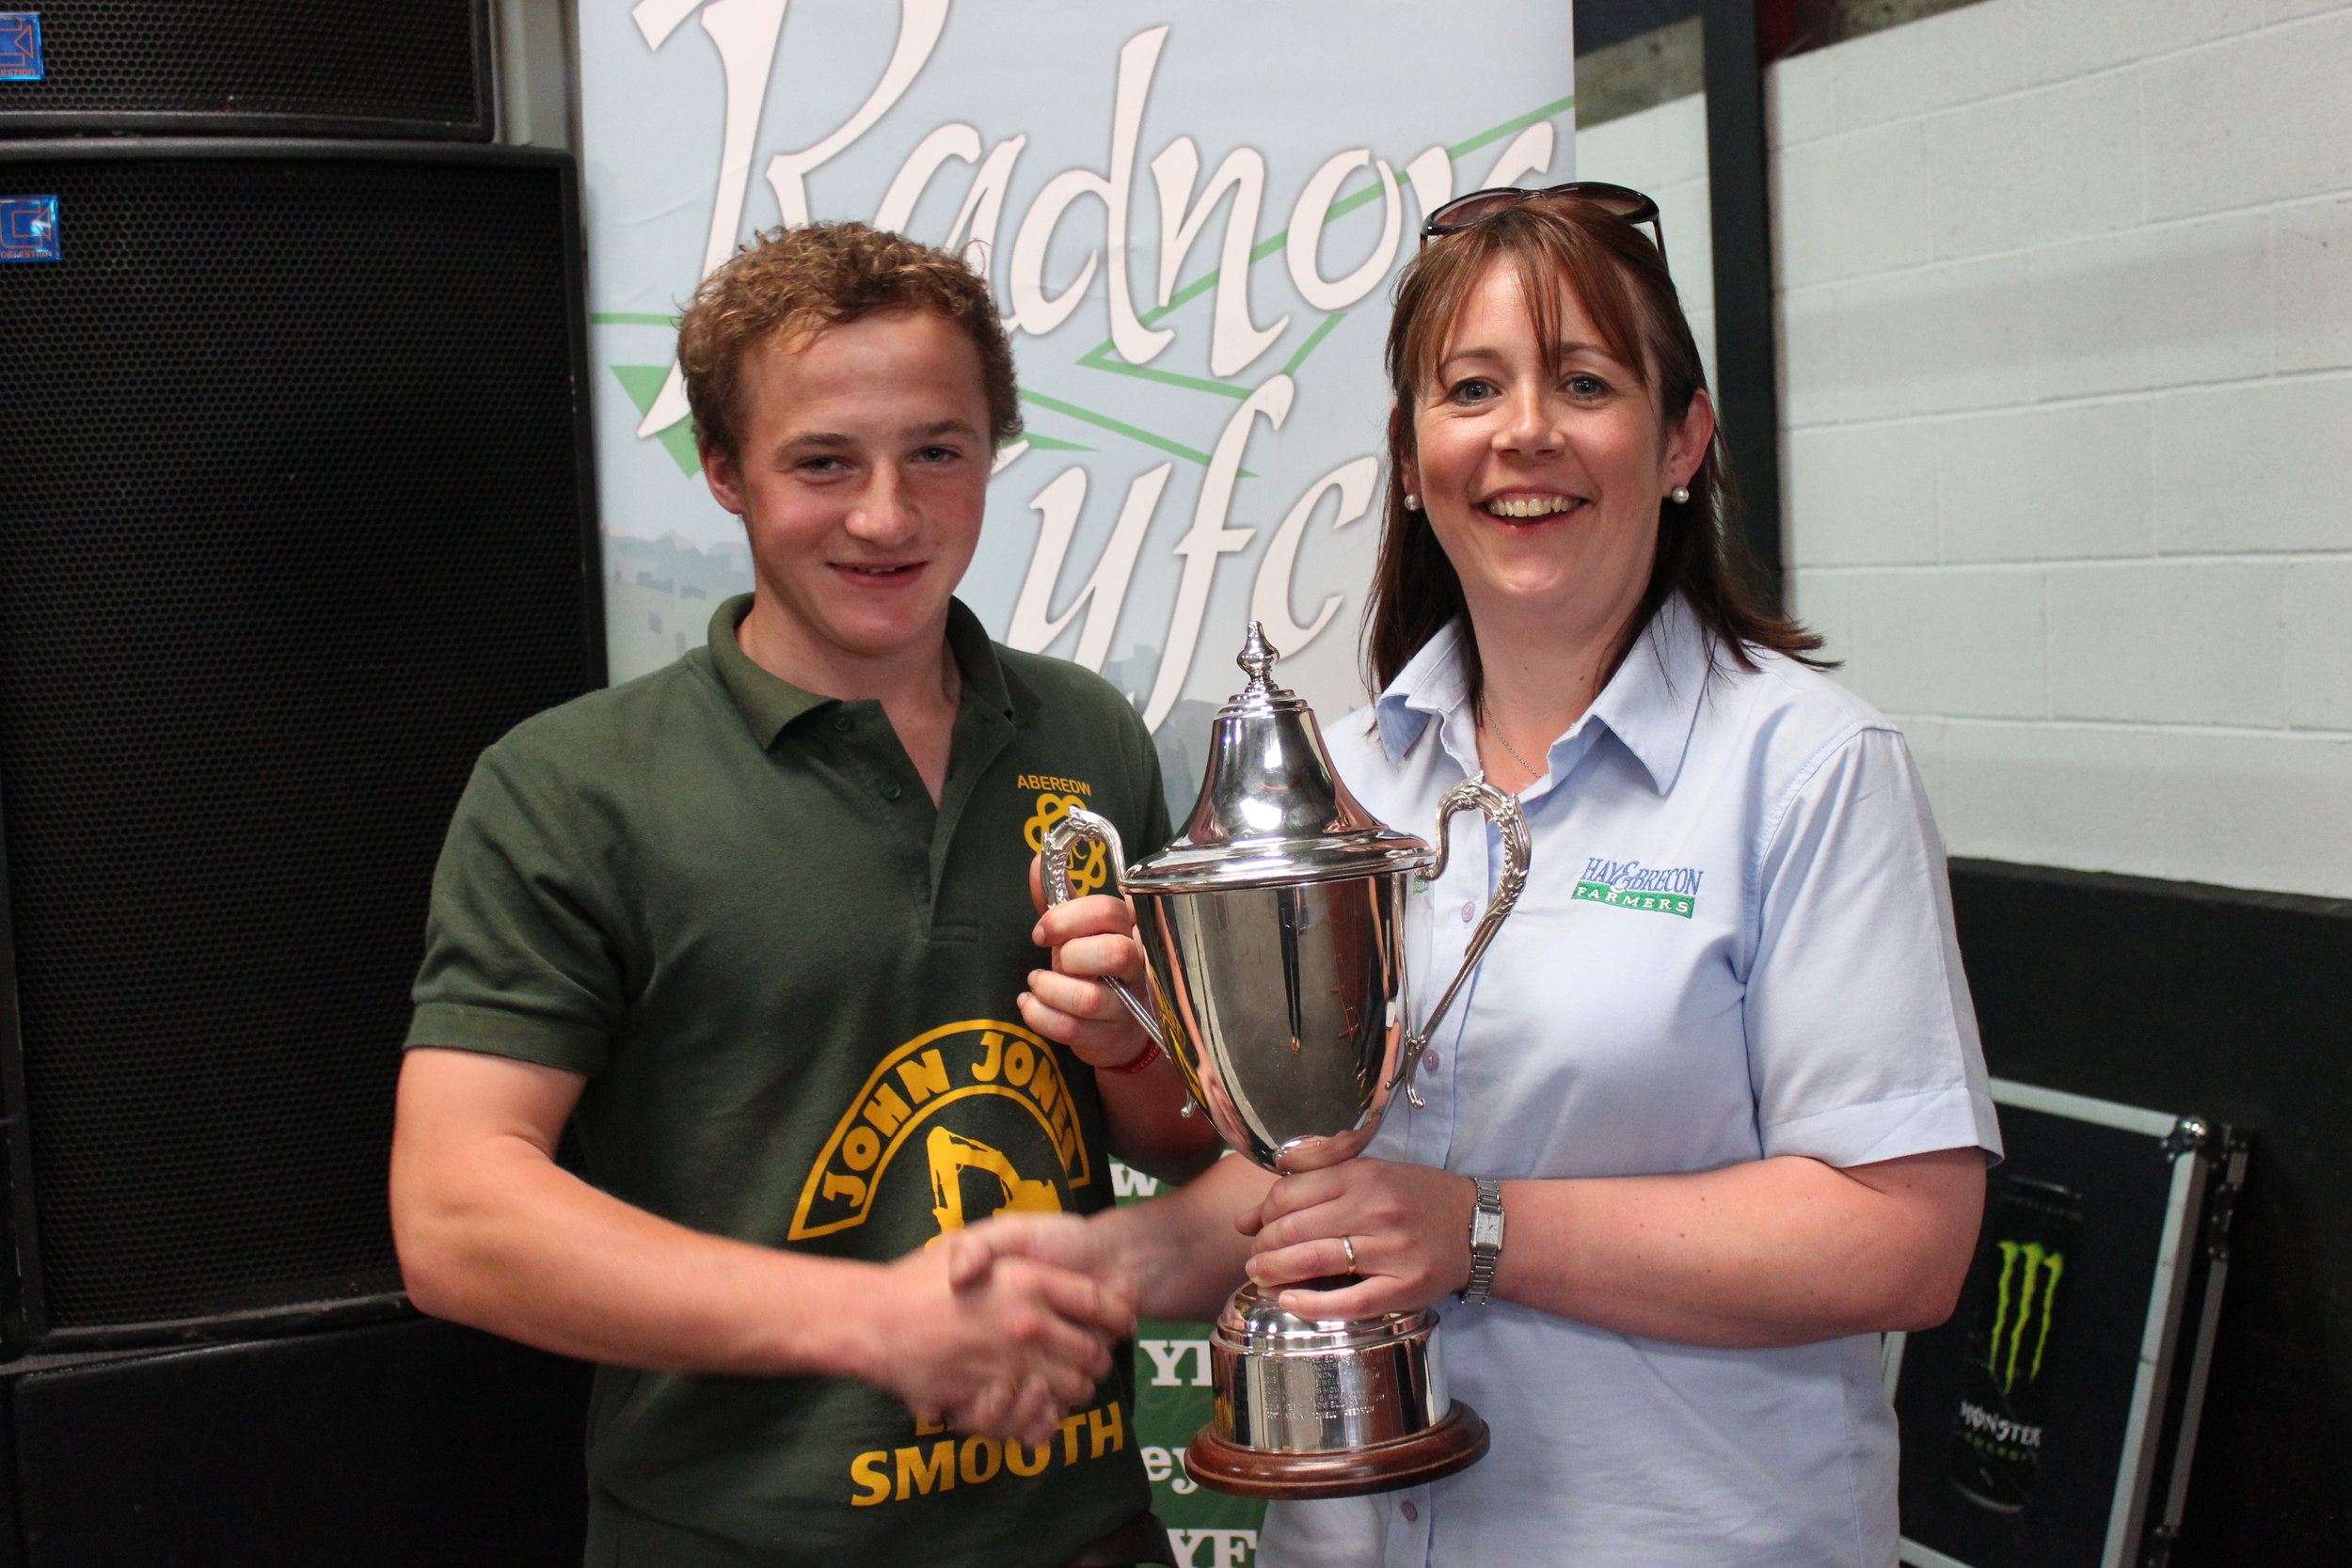 Reuben Powell, Aberedw YFC - Jonathan Ruell Memorial Cup / Highest mark attained by a male member in Stockjudging Compeitions